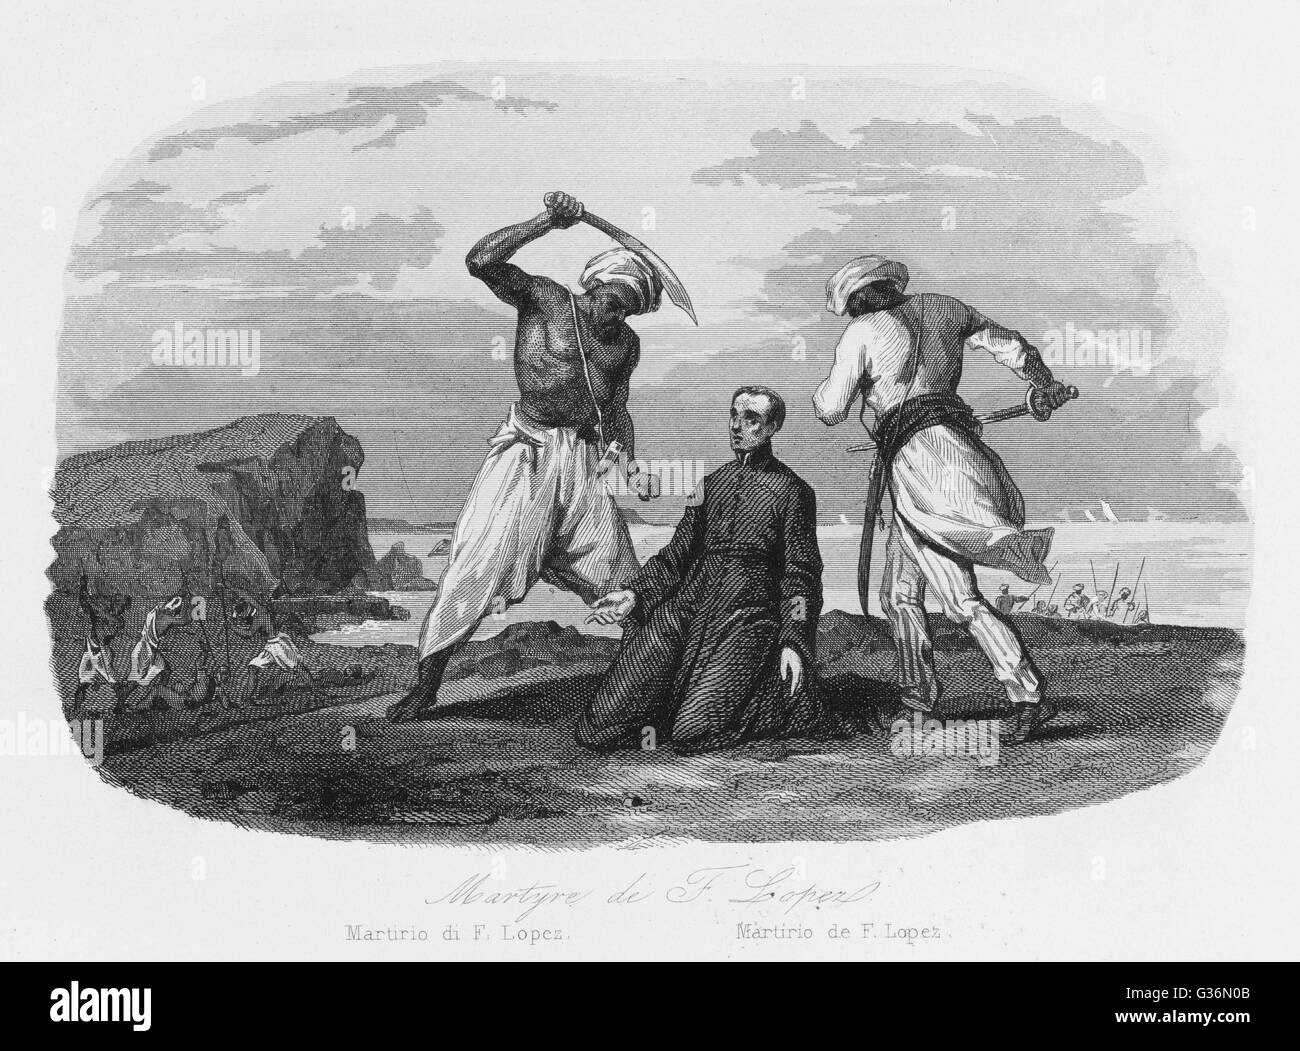 Francisco Lopez is murdered by Indian Moslems         Date: 1568 - Stock Image